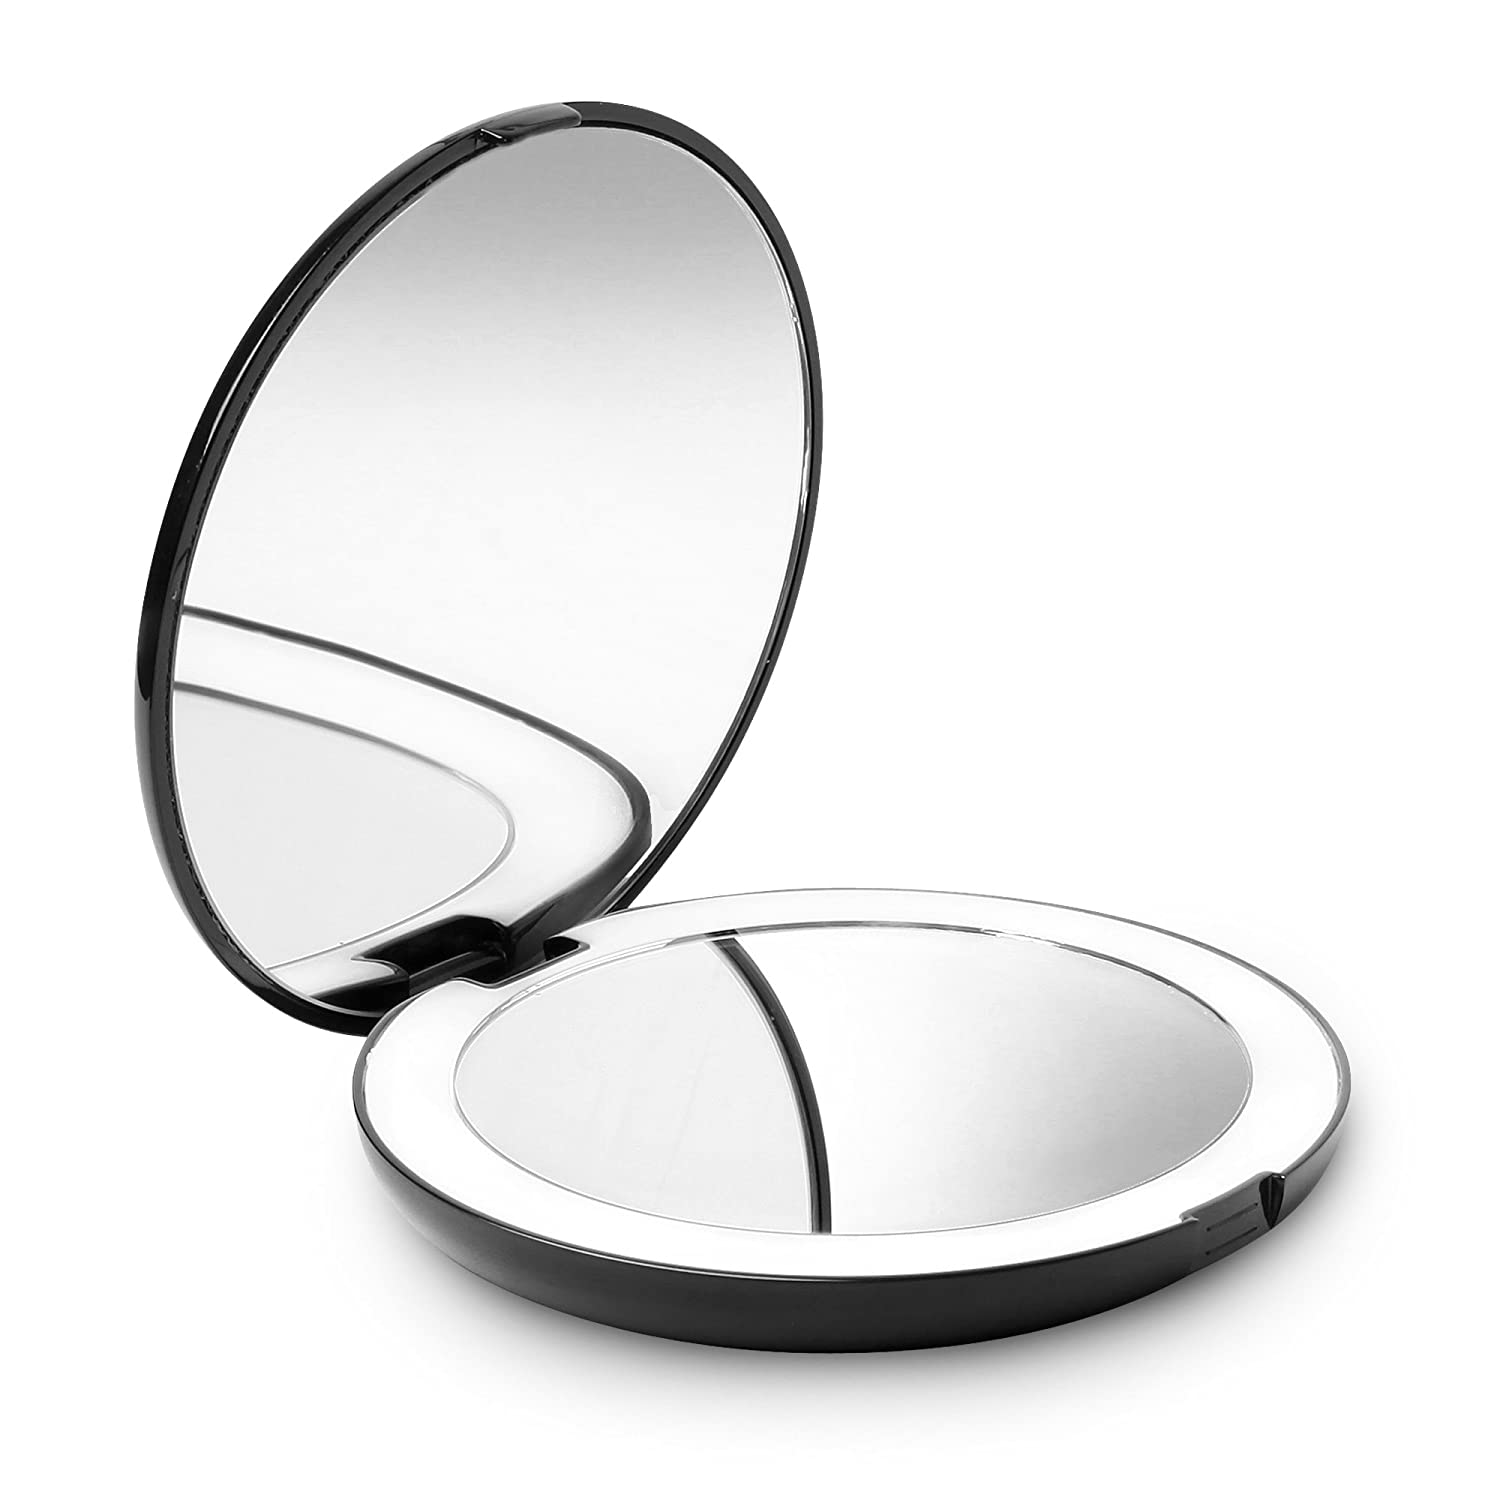 Fancii LED Lighted Travel Makeup Mirror, 1x 10x Magnification – Daylight LED, Compact, Portable, Large 5 Wide Illuminated Folding Mirror